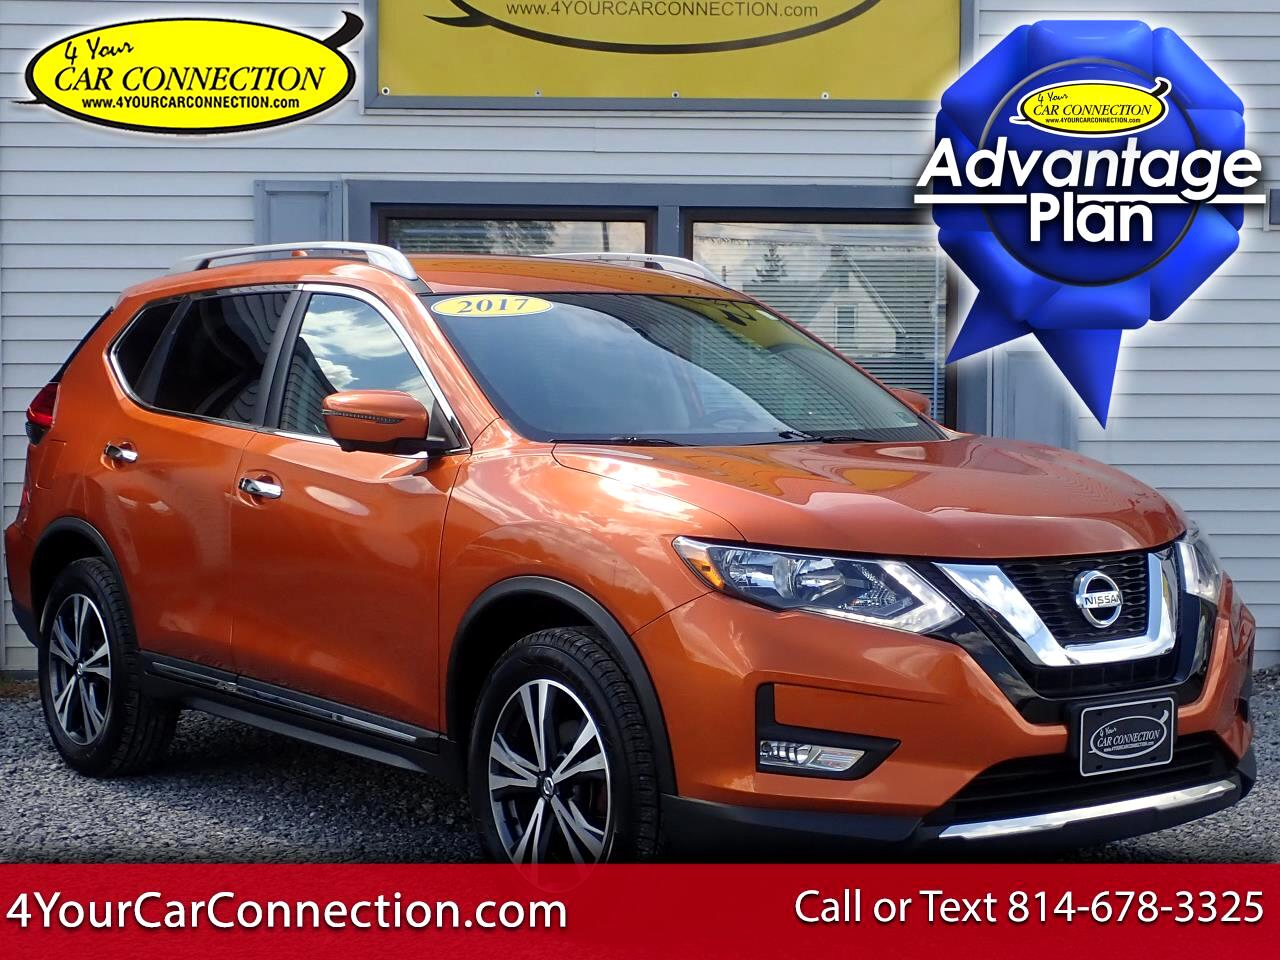 2017 Nissan Rogue for Sale in Cranberry, PA - Image 1